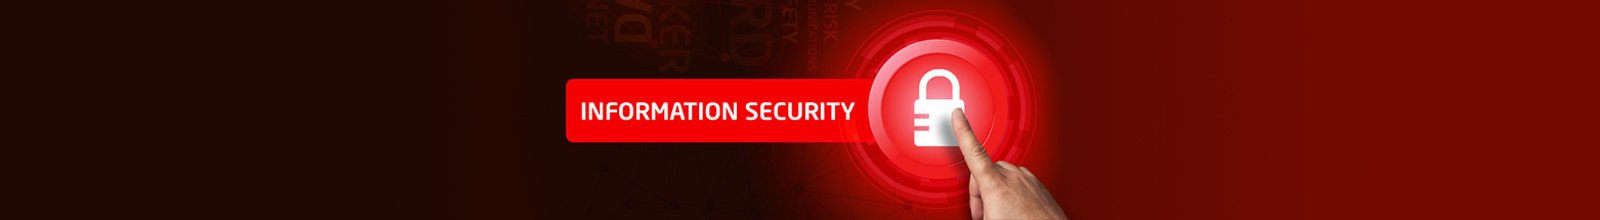 Information Security Services, Threat Assessment, Vulnerability Assessment and Penetration Testing